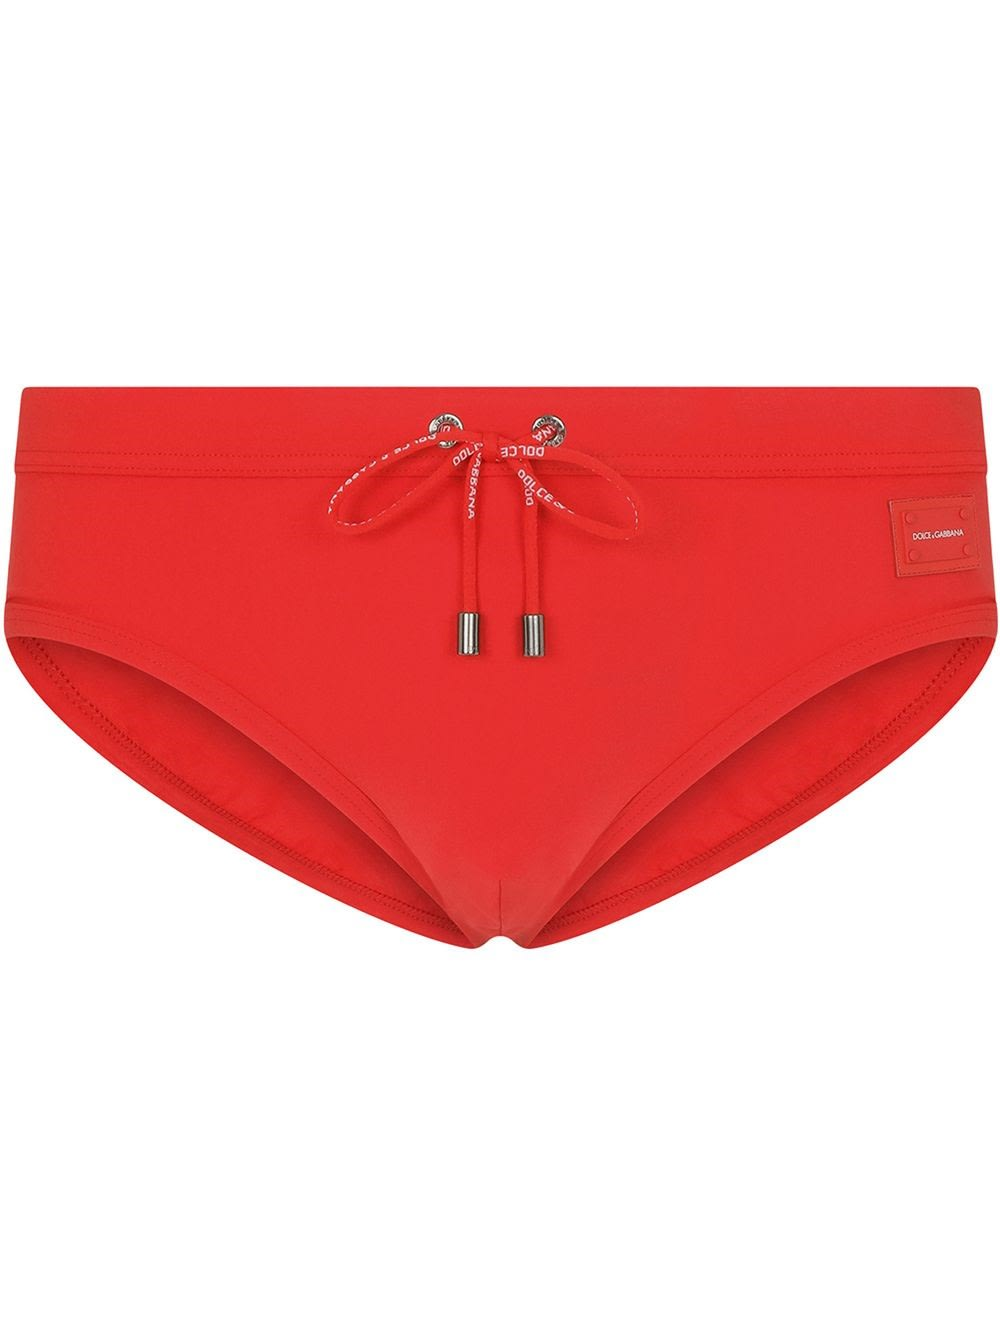 Dolce & Gabbana Briefs RED SWIM BRIEF WITH LOGO